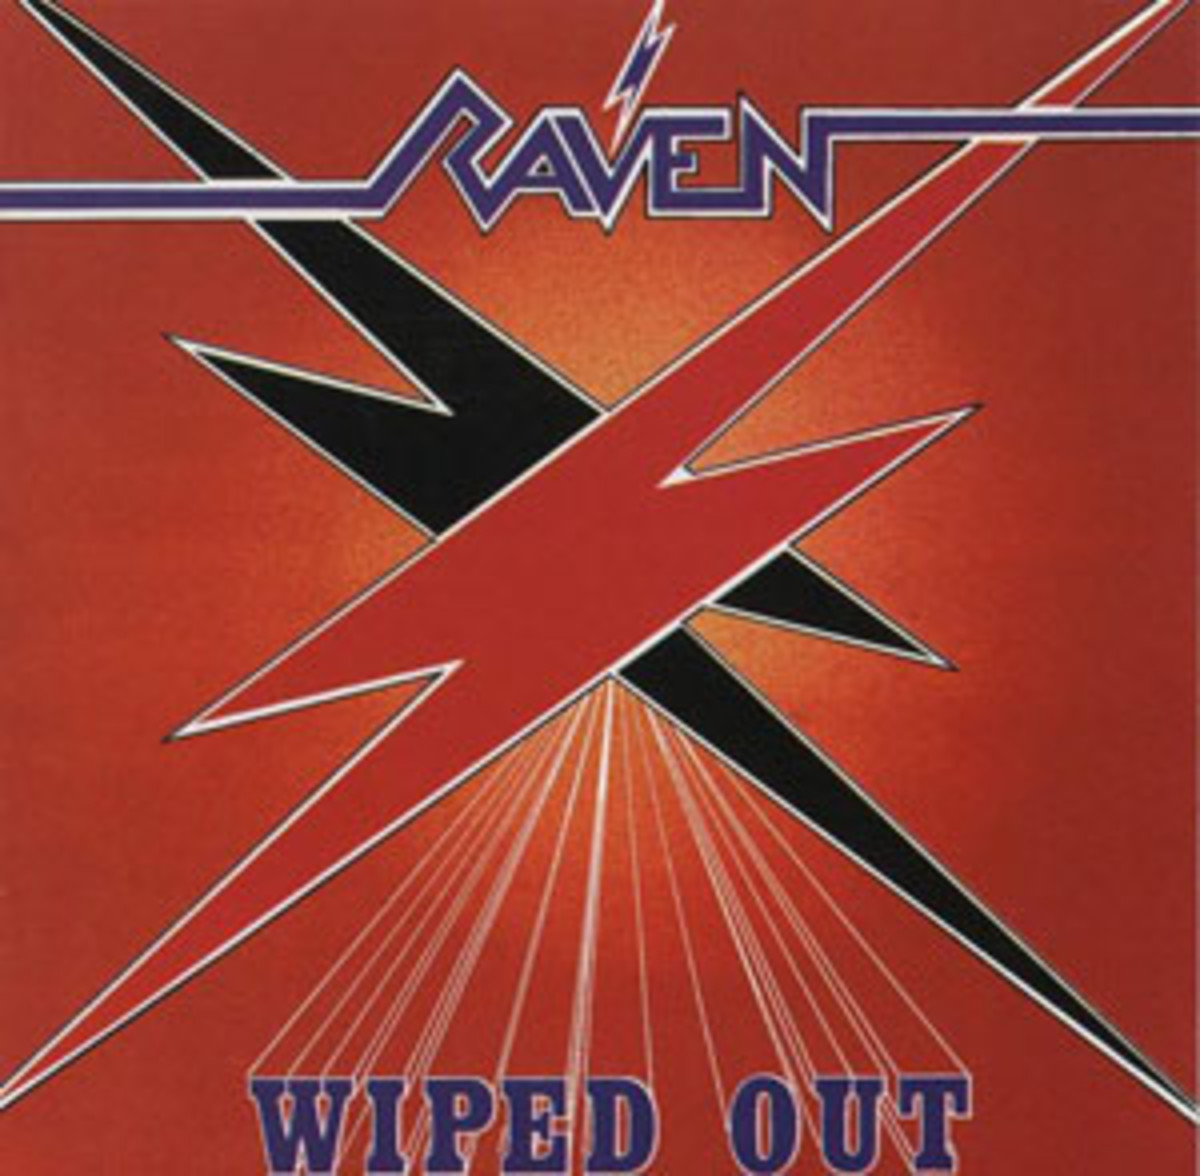 Raven_WipedOut